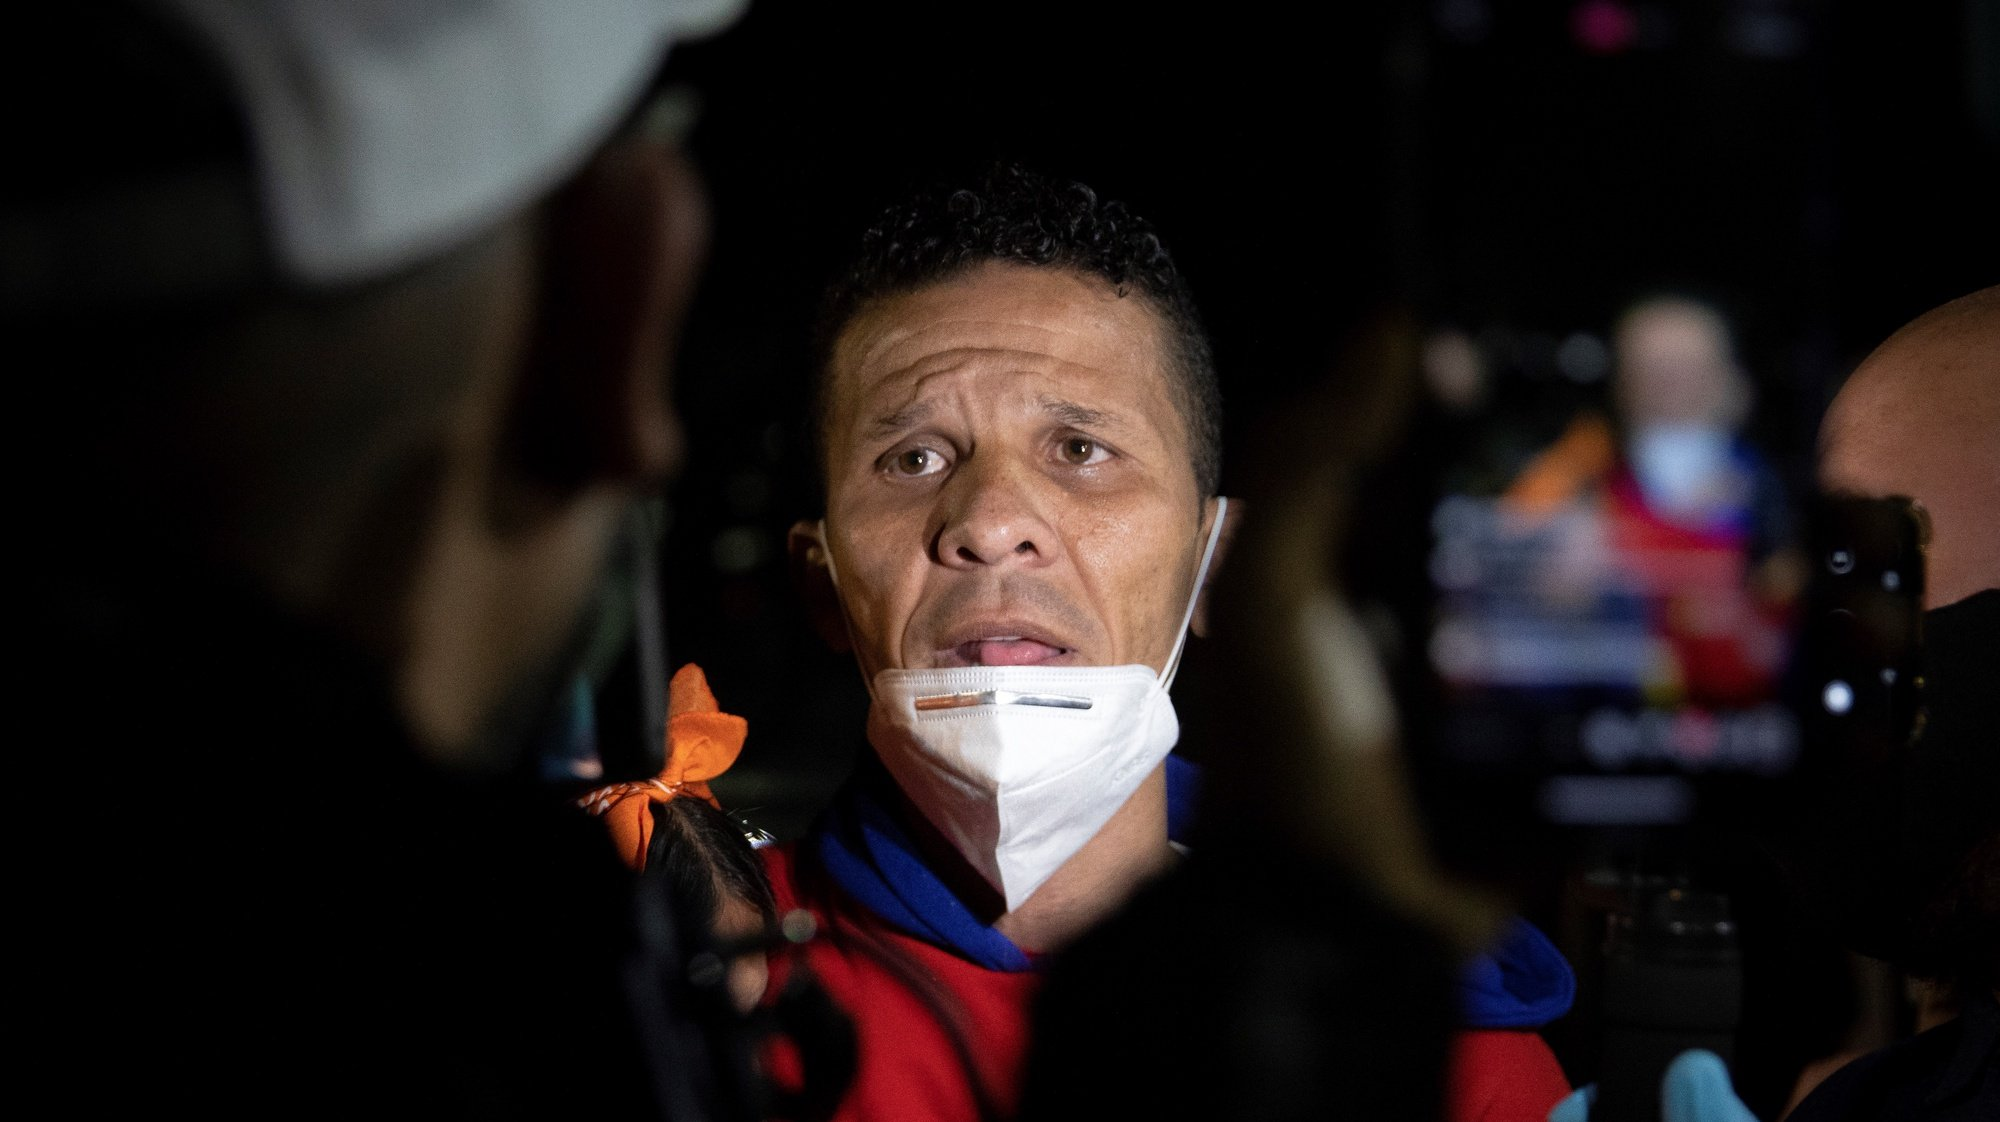 epa08638218 Opposition lawmaker Gilber Caro (C) speaks to the media after being released, at the headquarters of the Special Actions Forces of the Bolivarian National Police, in Caracas, Venezuela, 31 August 2020. Venezuelan authorities began to release prisoners on the evening of 31 August who were pardoned hours before by presidential decree made by President of Venezuela Nicolas Maduro, by which 110 people will receive various benefits, such as release or dismissal of charges.  EPA/RAYNER PENA R